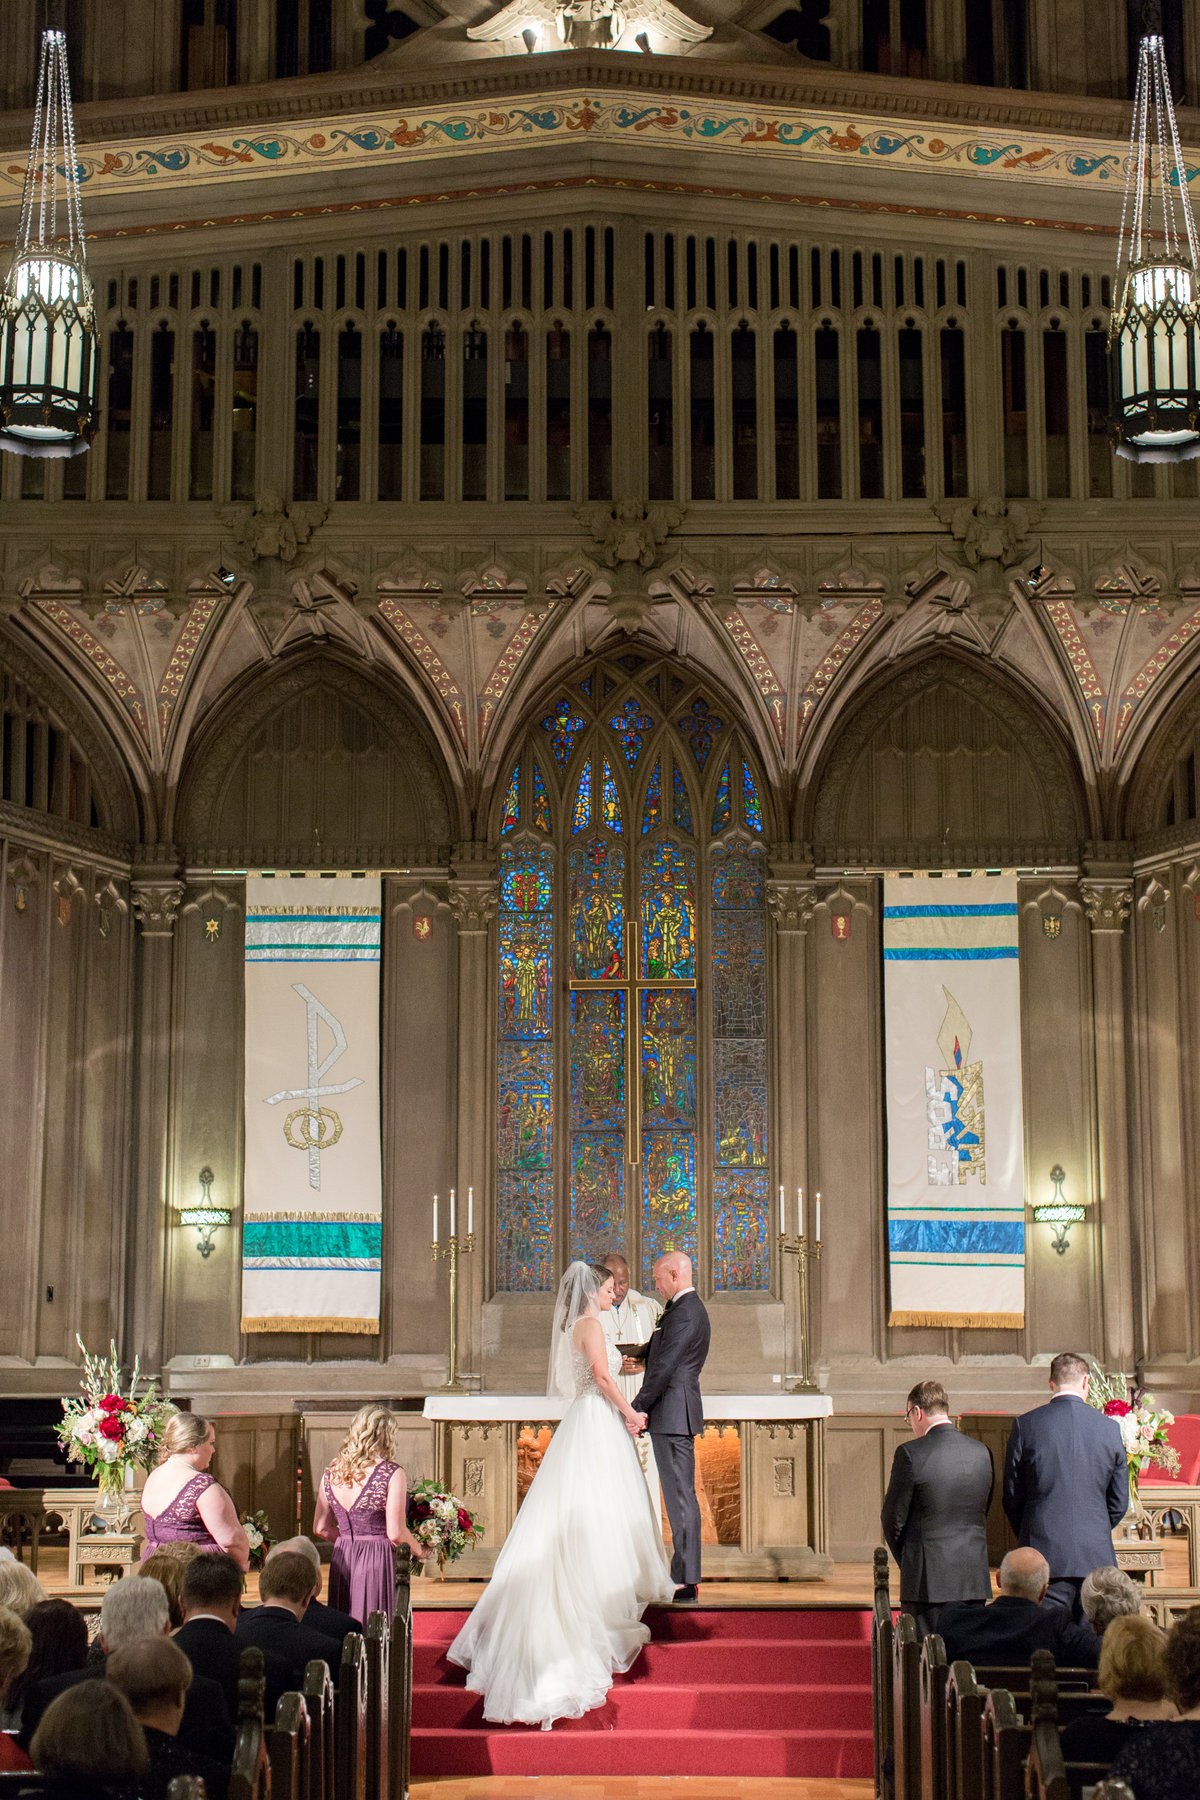 Newberry-Library-Wedding-Chicago-119